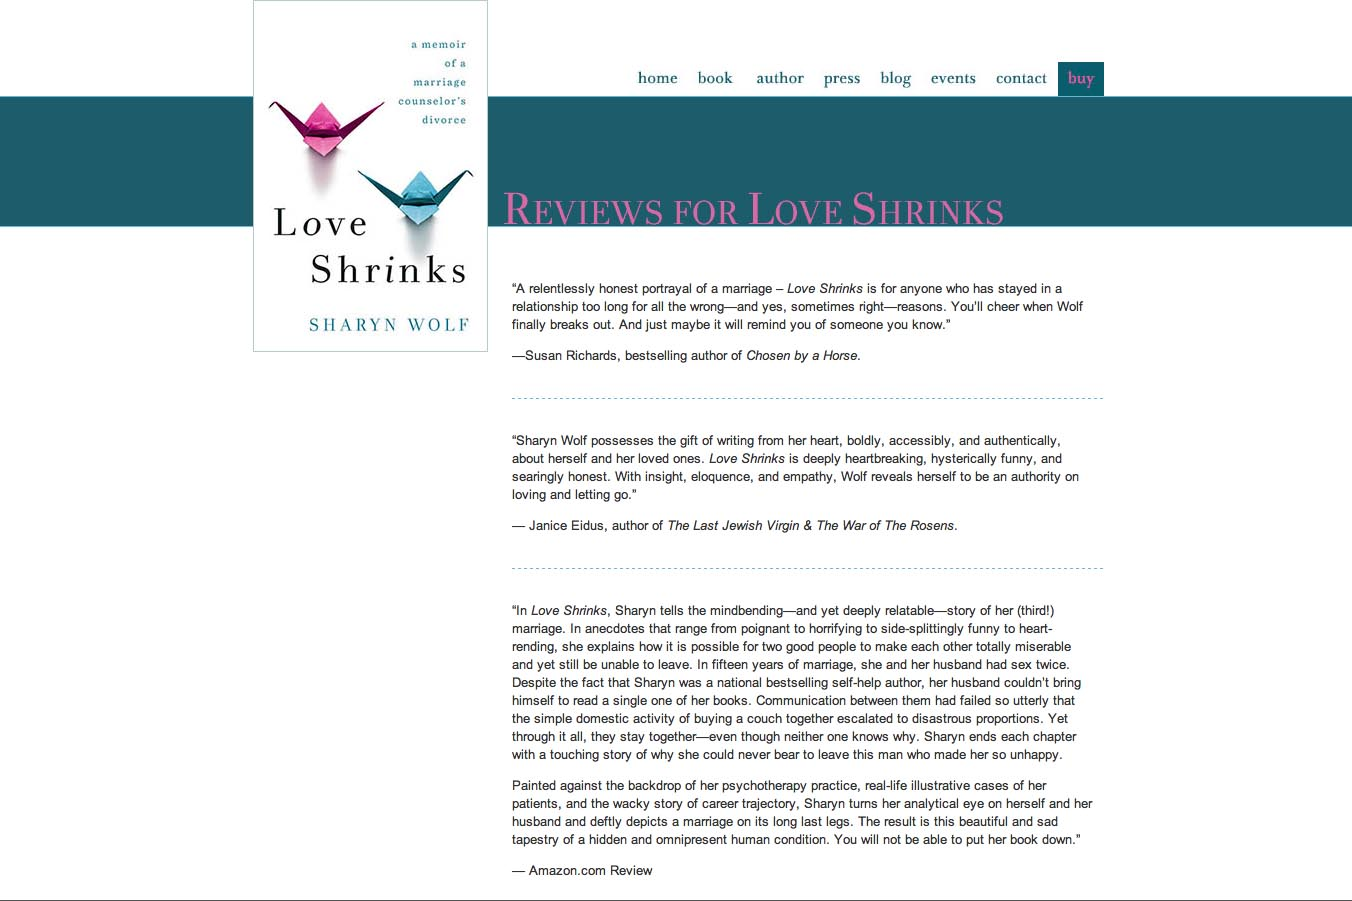 web design for a book by a relationships therapist - reviews page